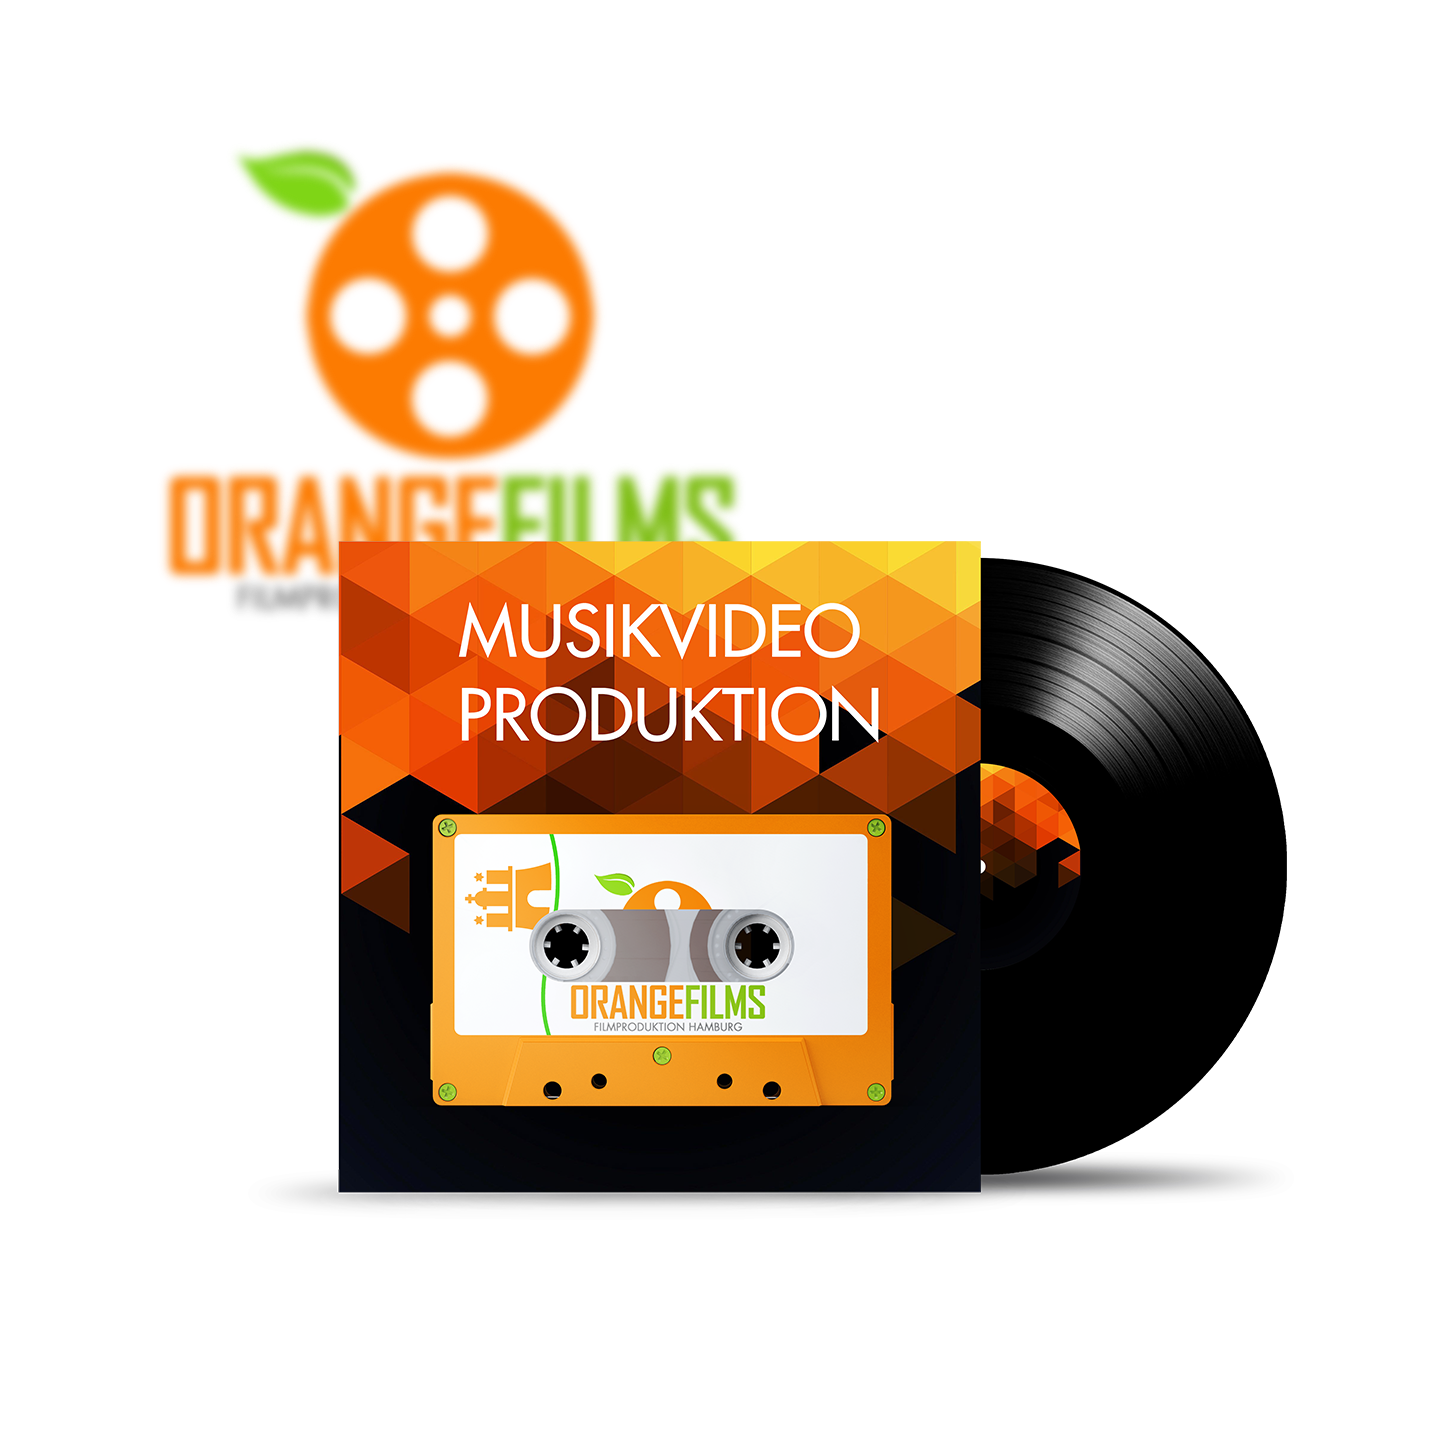 musikvideo-produktion-hamburg-vinyl